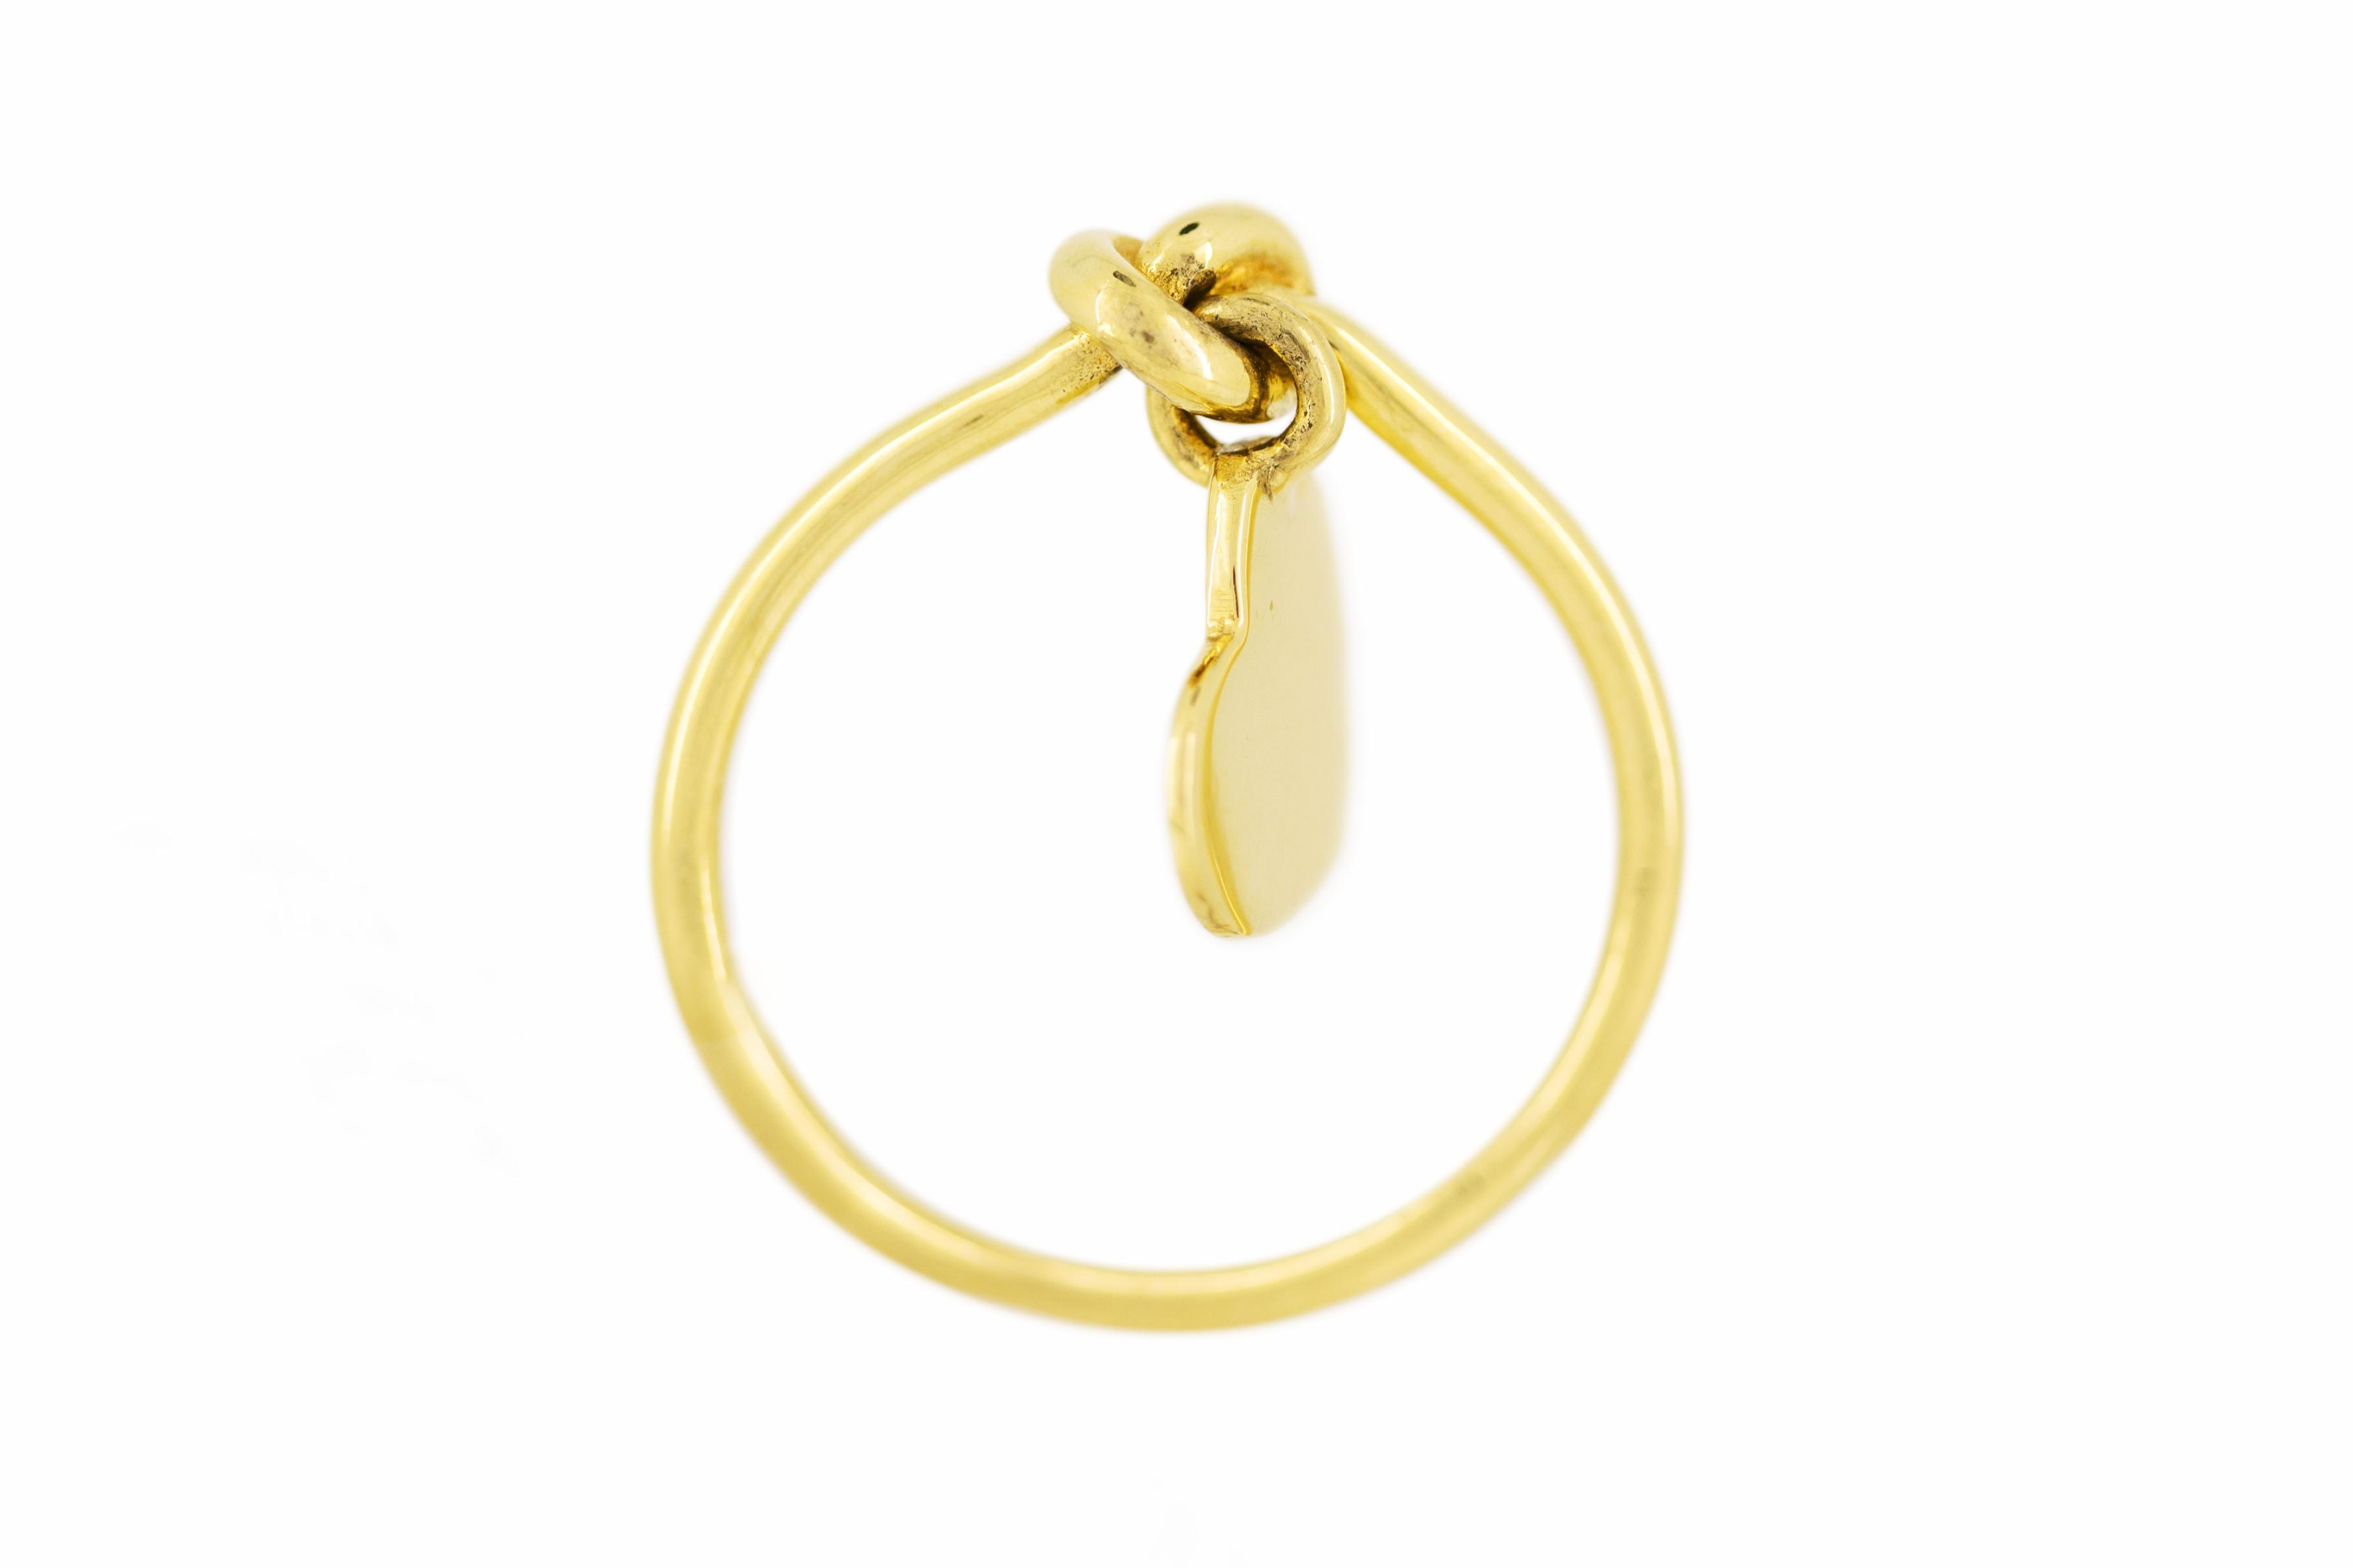 18ct Yellow Gold Knot Ring with Dangling Heart